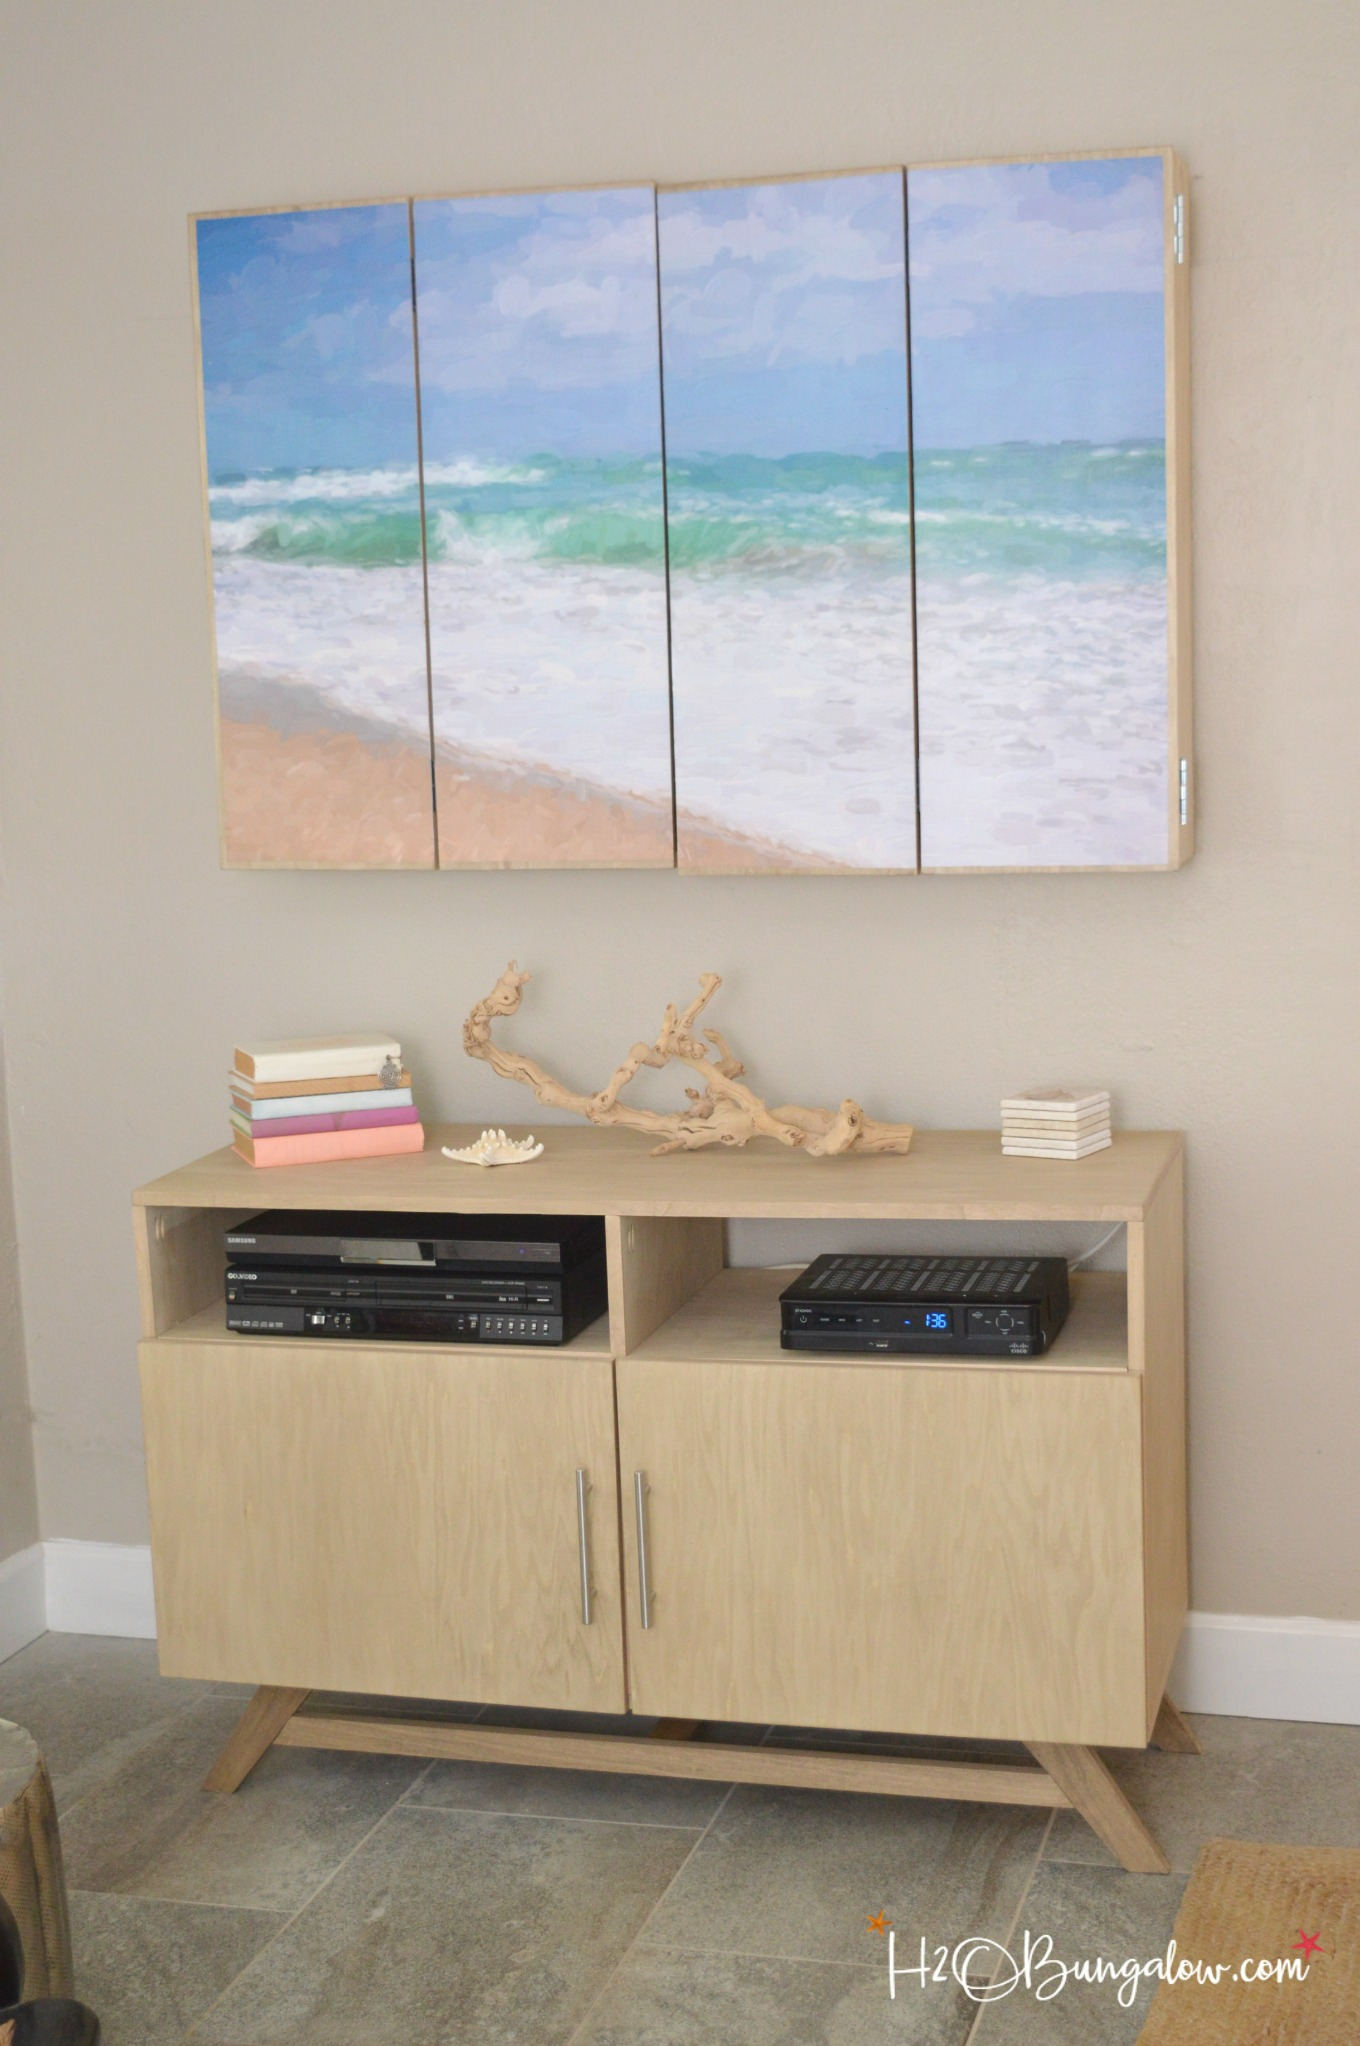 In Wall Media Cabinet Diy Media Console With Free Plans H2obungalow